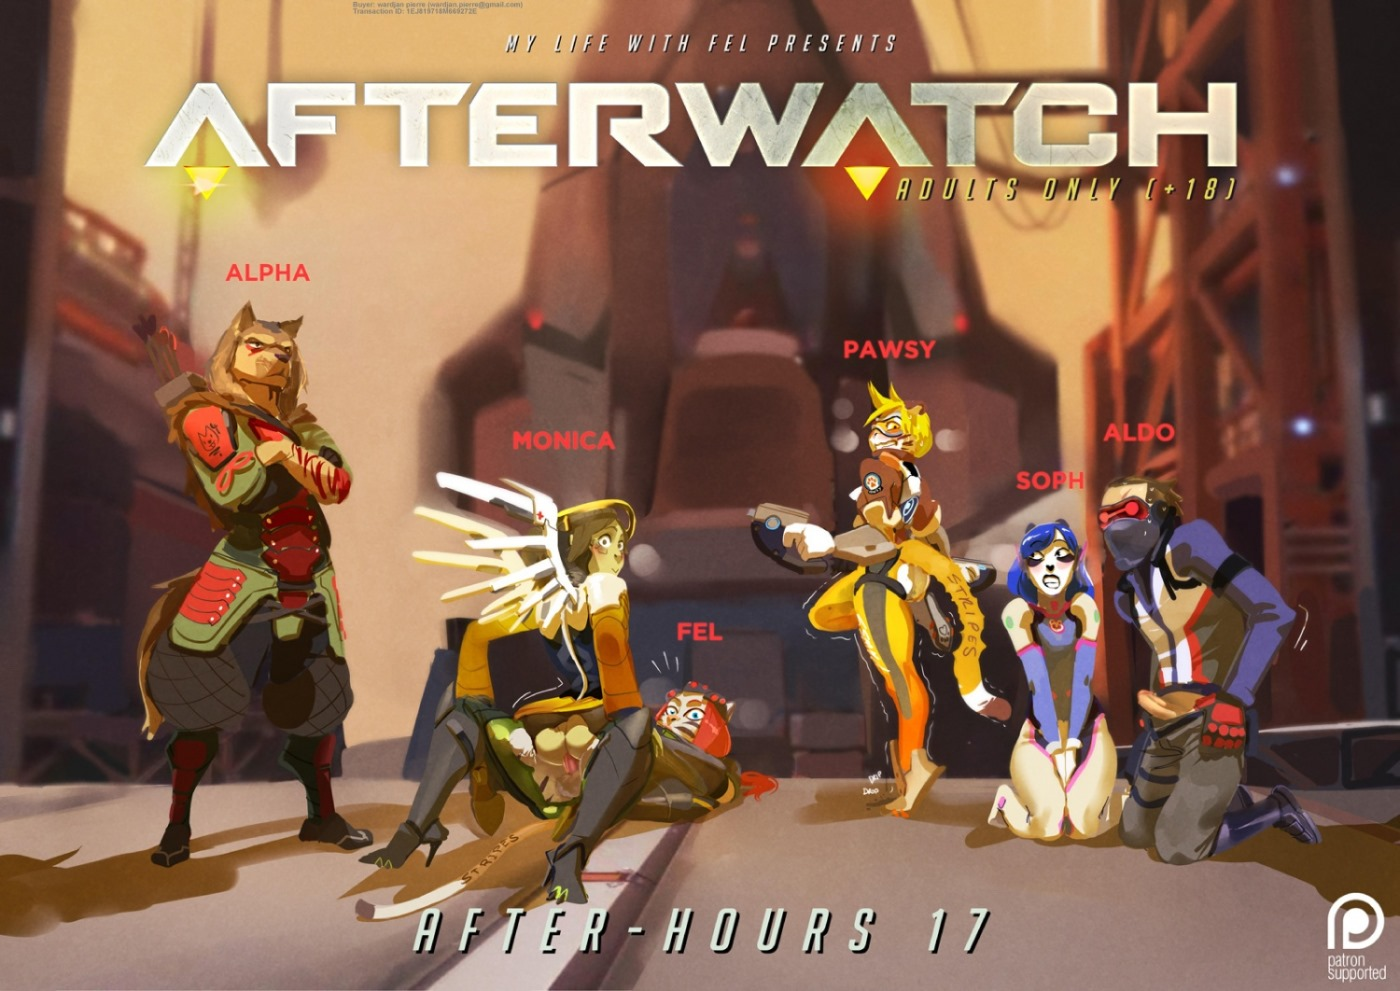 After Hours 17 Afterwatch- Overwatch